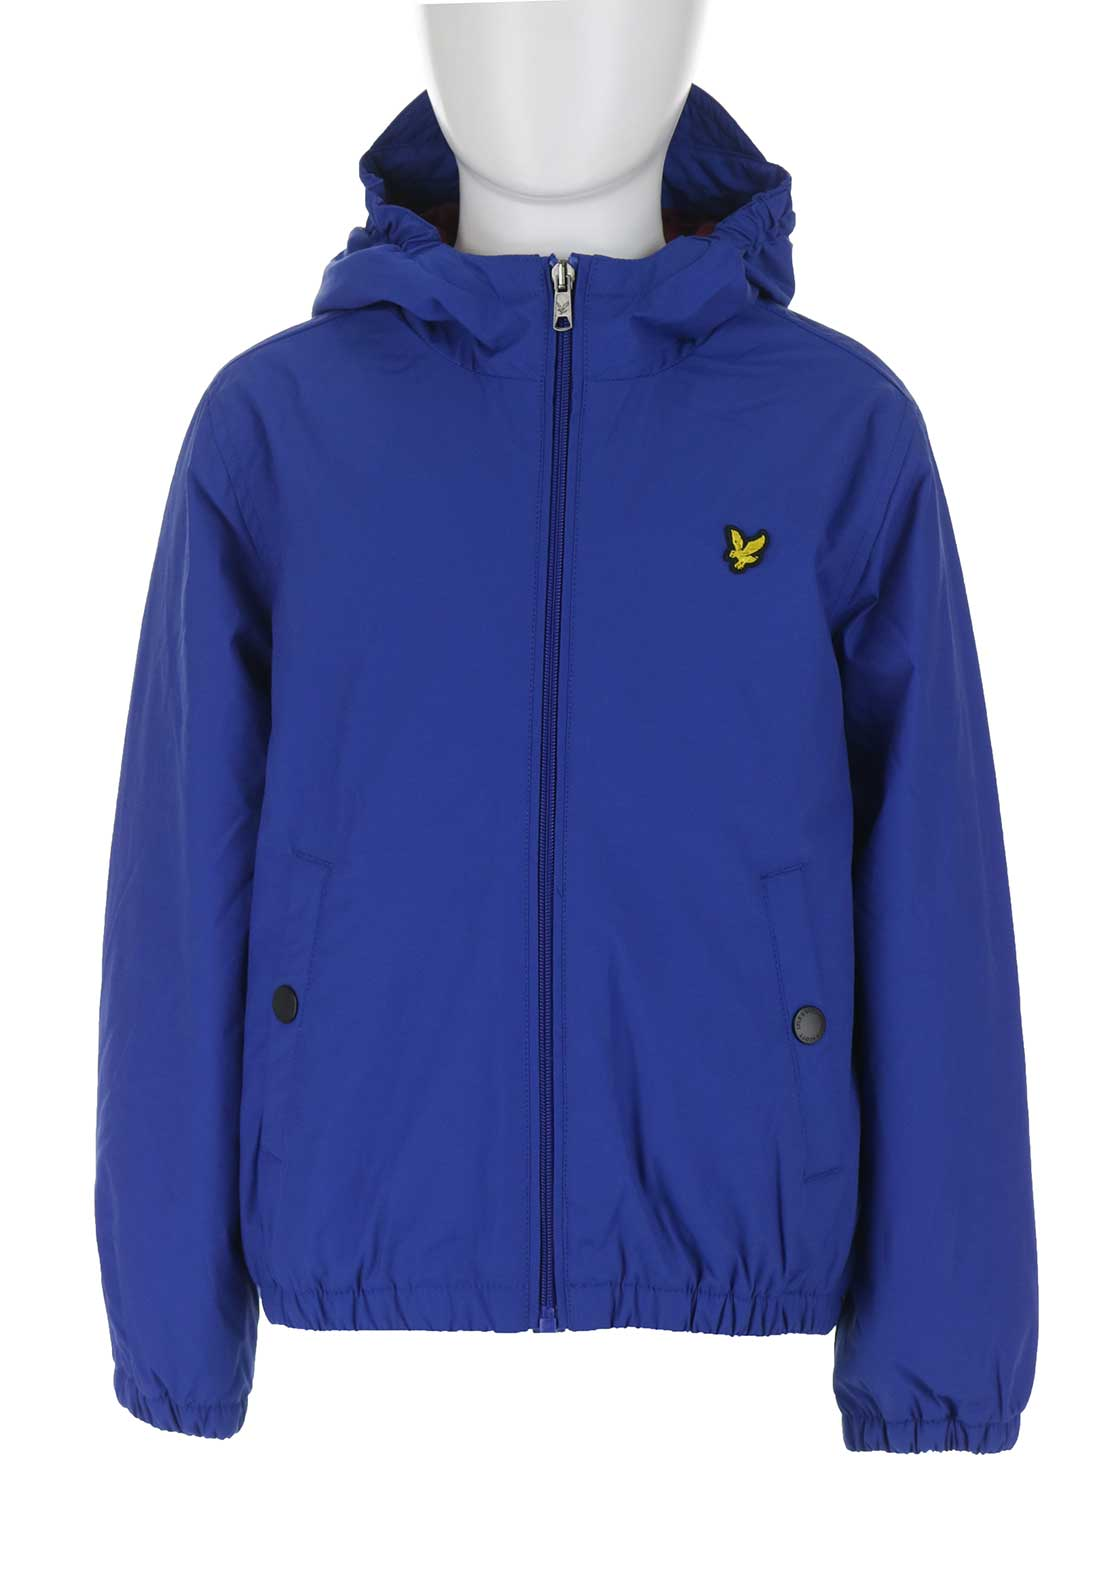 Lyle & Scott Zip Through Hooded Jacket, Blue